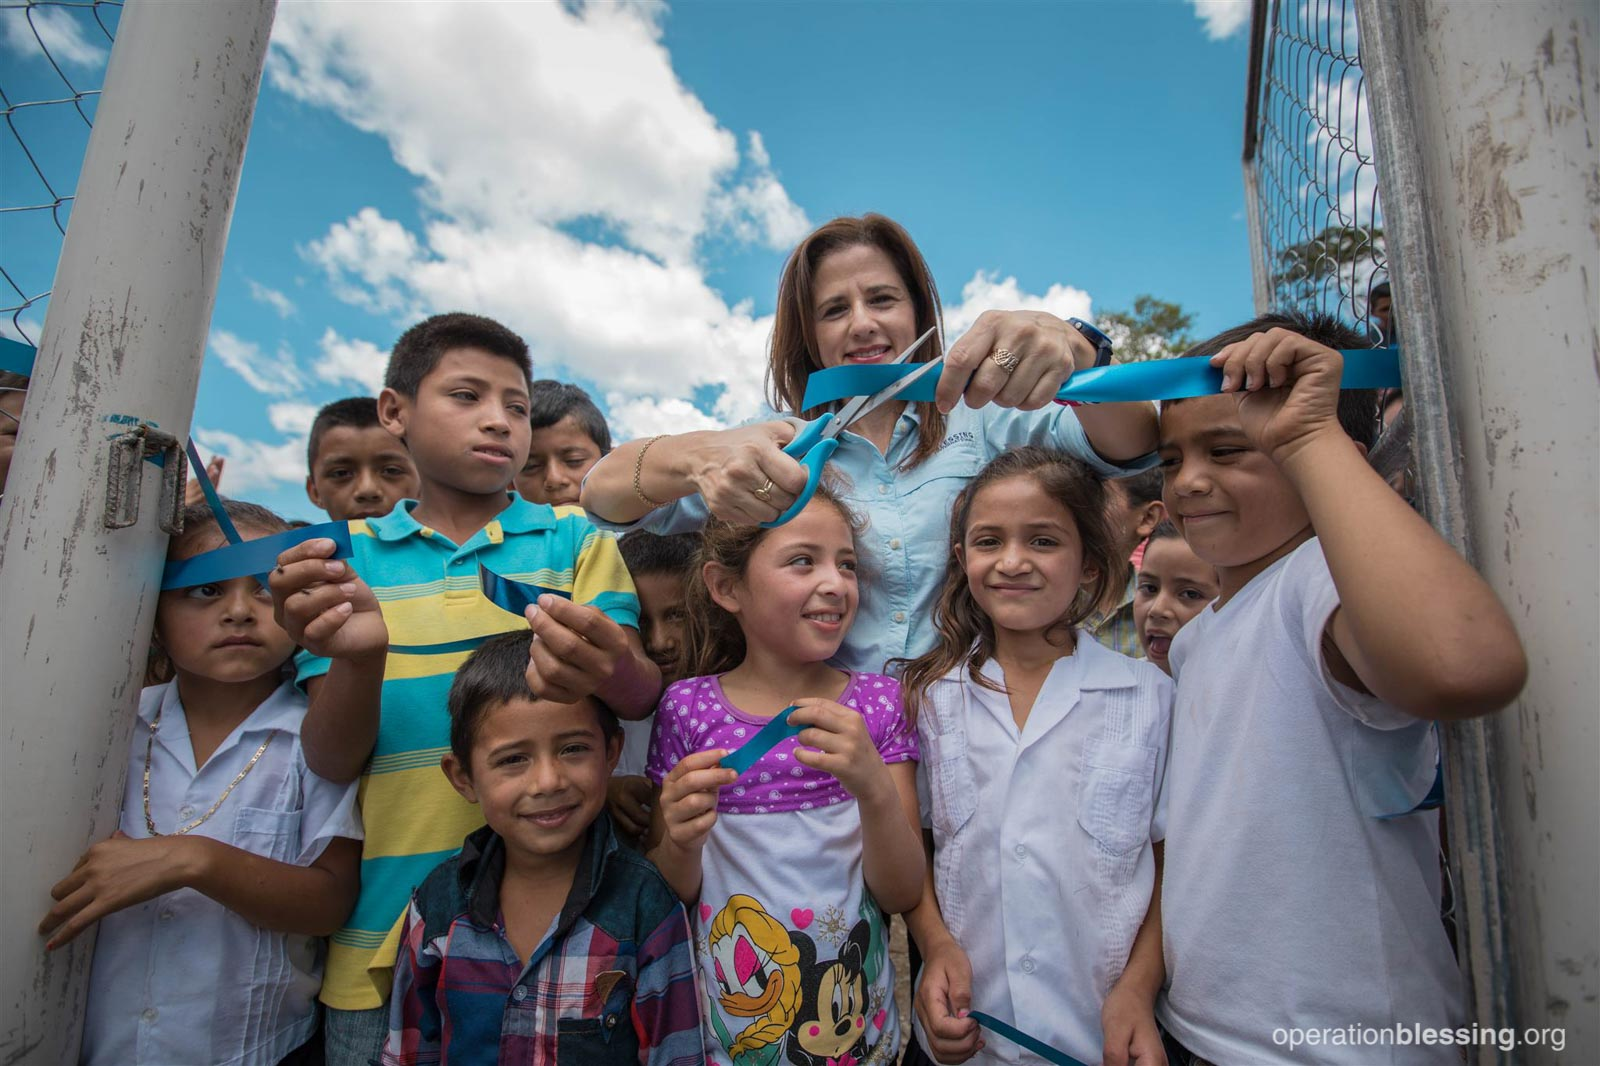 The villagers of Agua Buena cut a ribbon, unwrapping the gift of safe water.